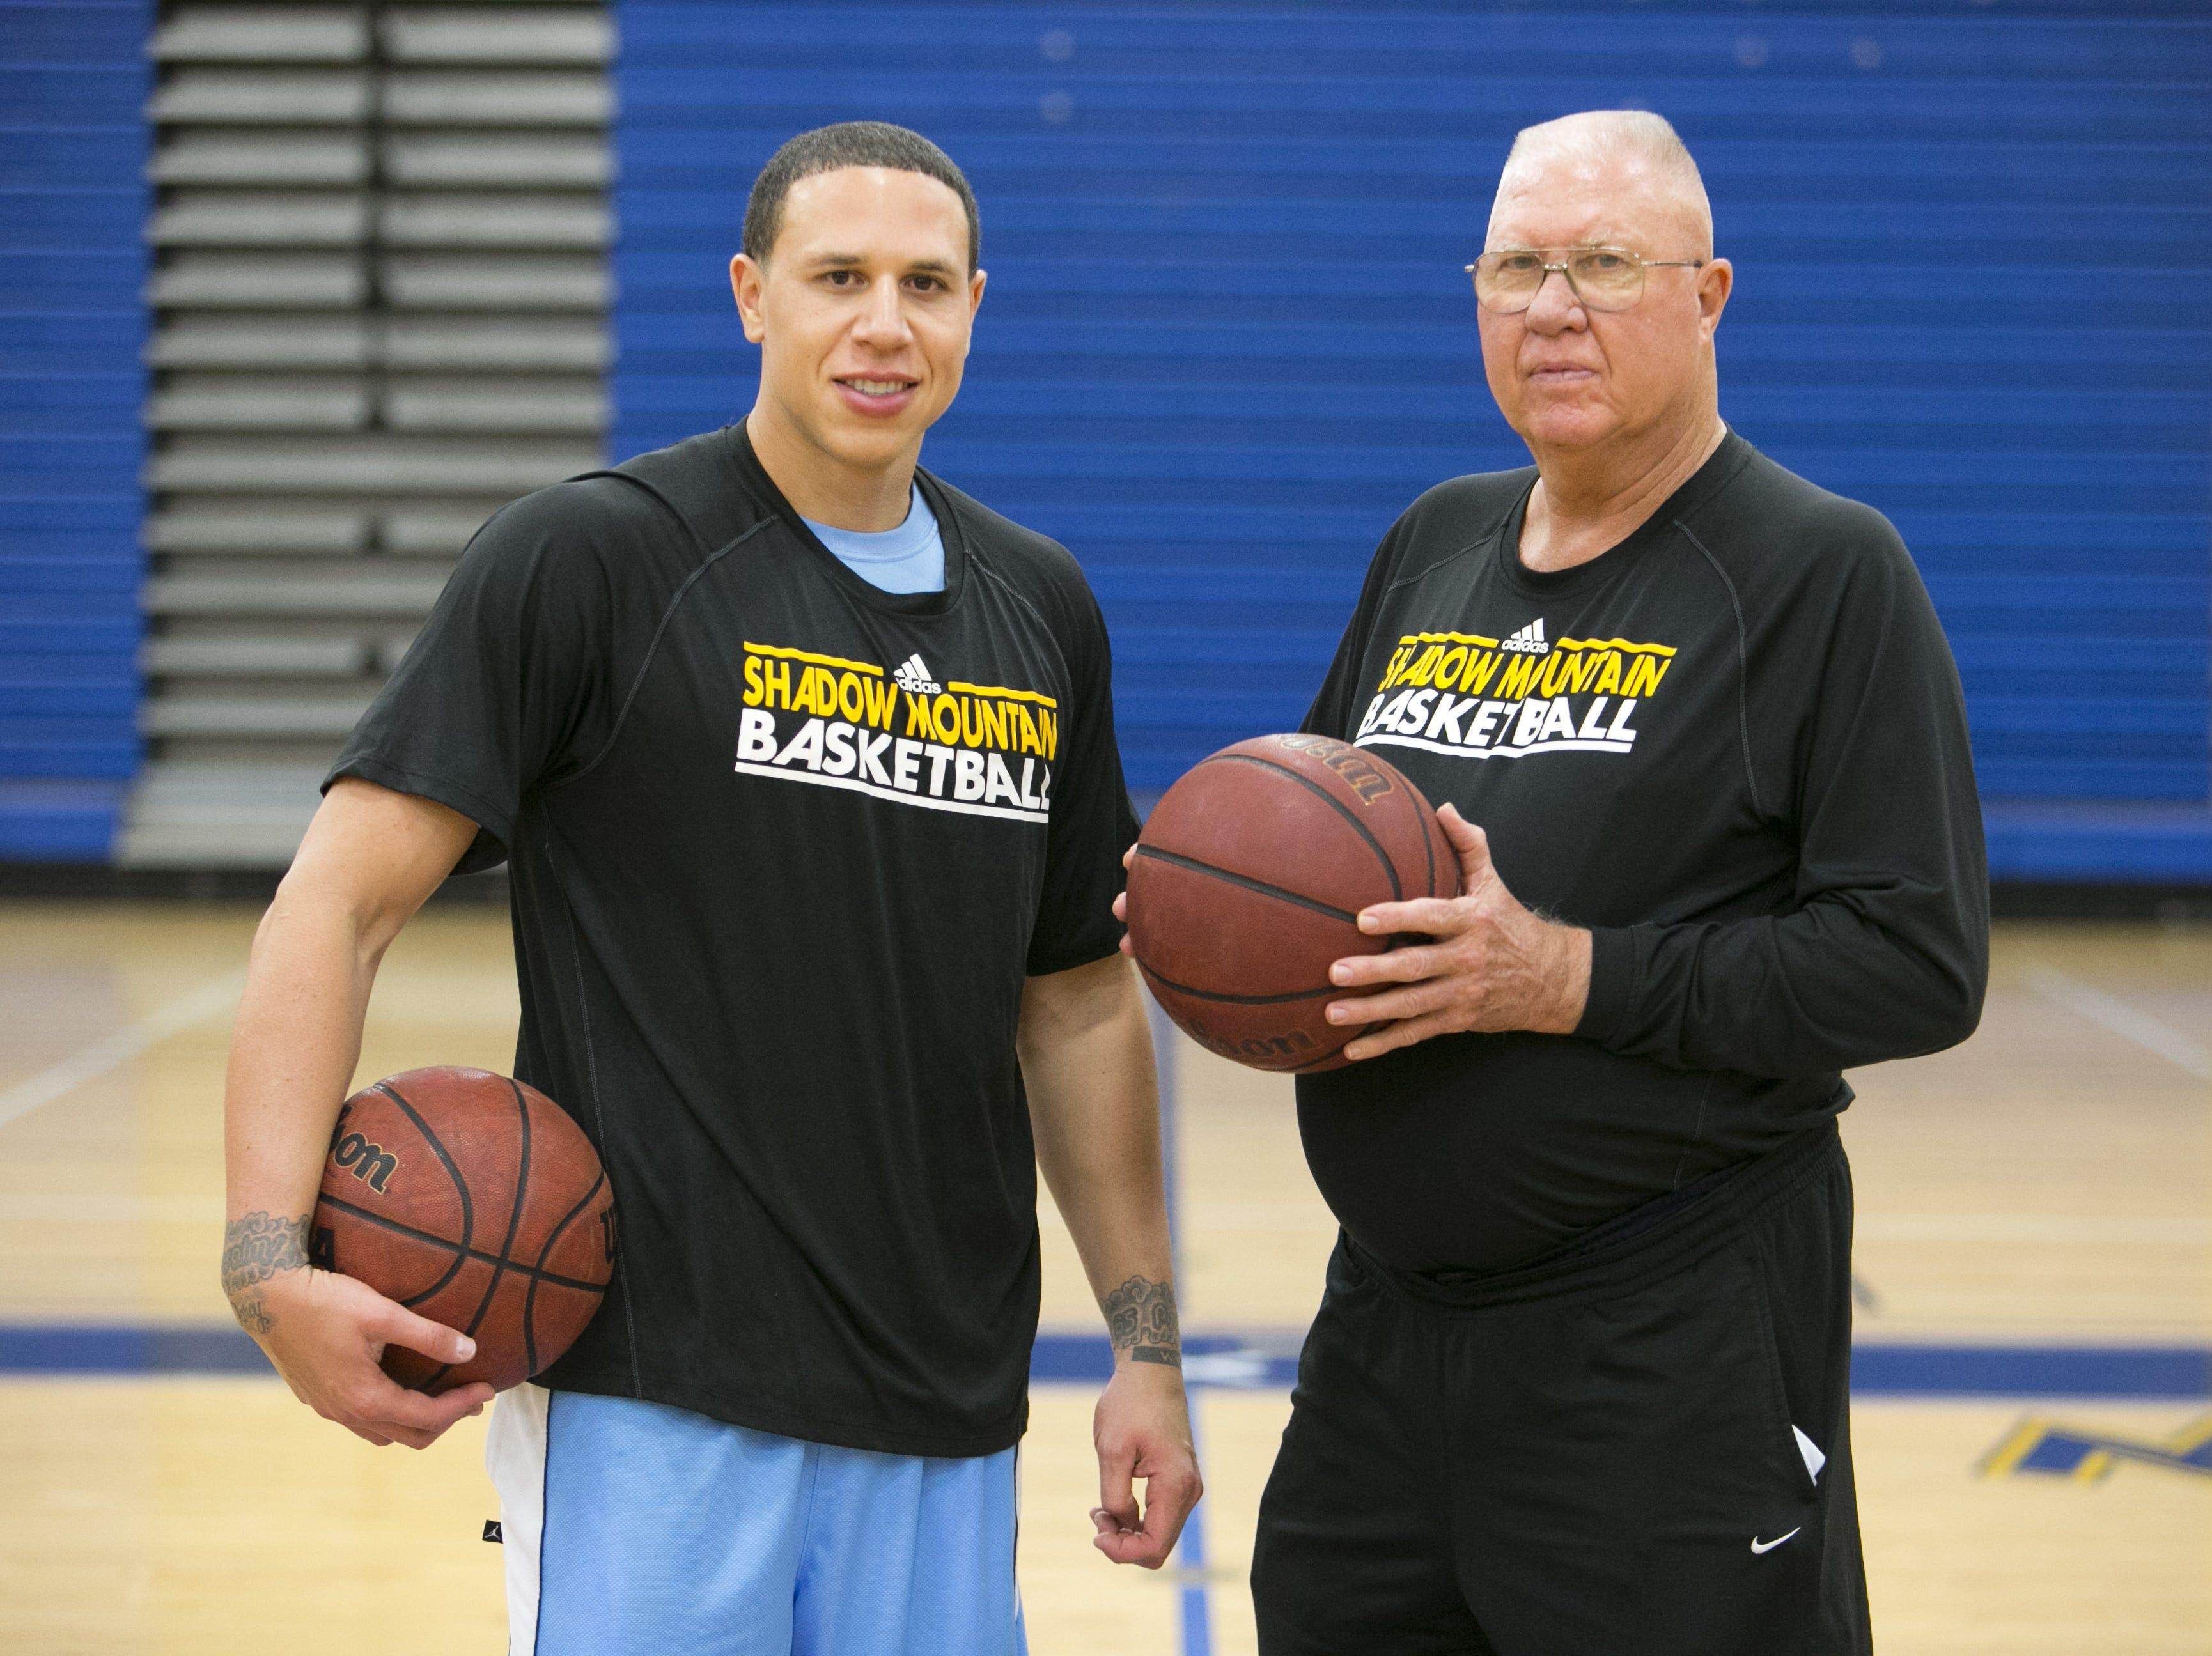 Former Shadow Mountain and UA star and NBA player and now Shadow Mountain assistant coach Mike Bibby is seen with Shadow Mountain head coach Jerry Conner during a practice at Shadow Mountain High in Phoenix on Wednesday, December 11, 2013.